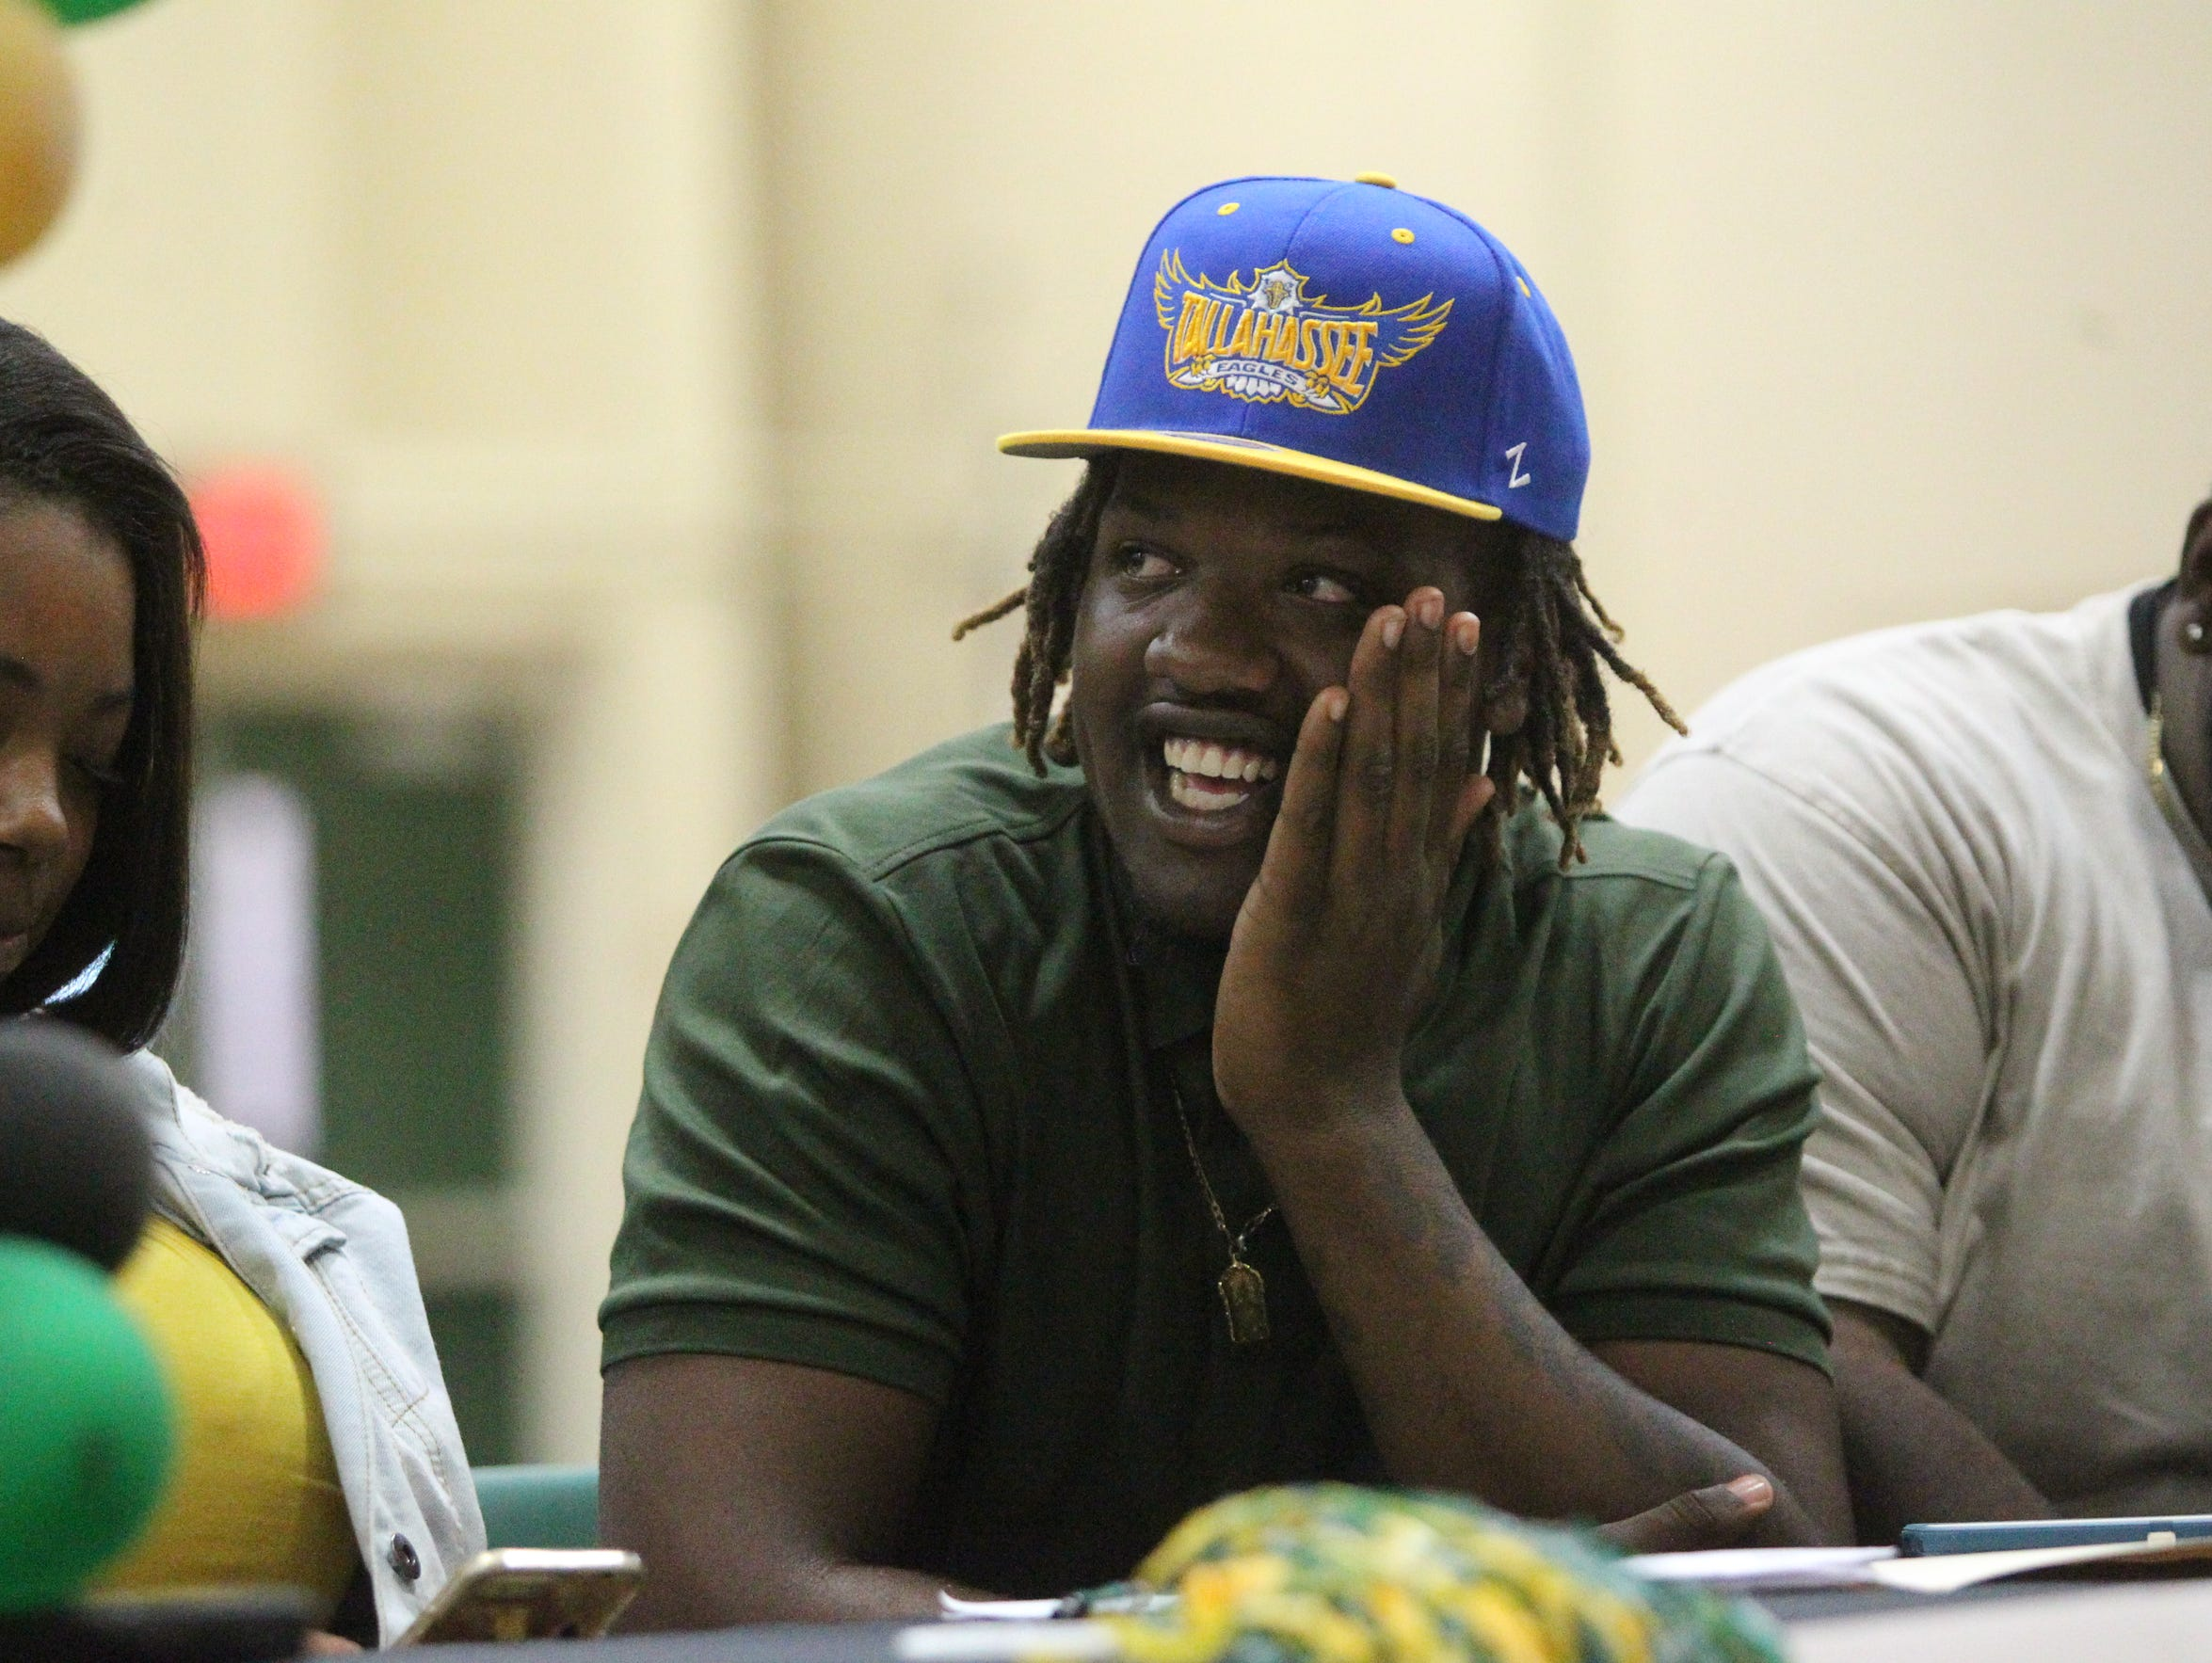 Lincoln High senior Tyler Farmer was all smiles after